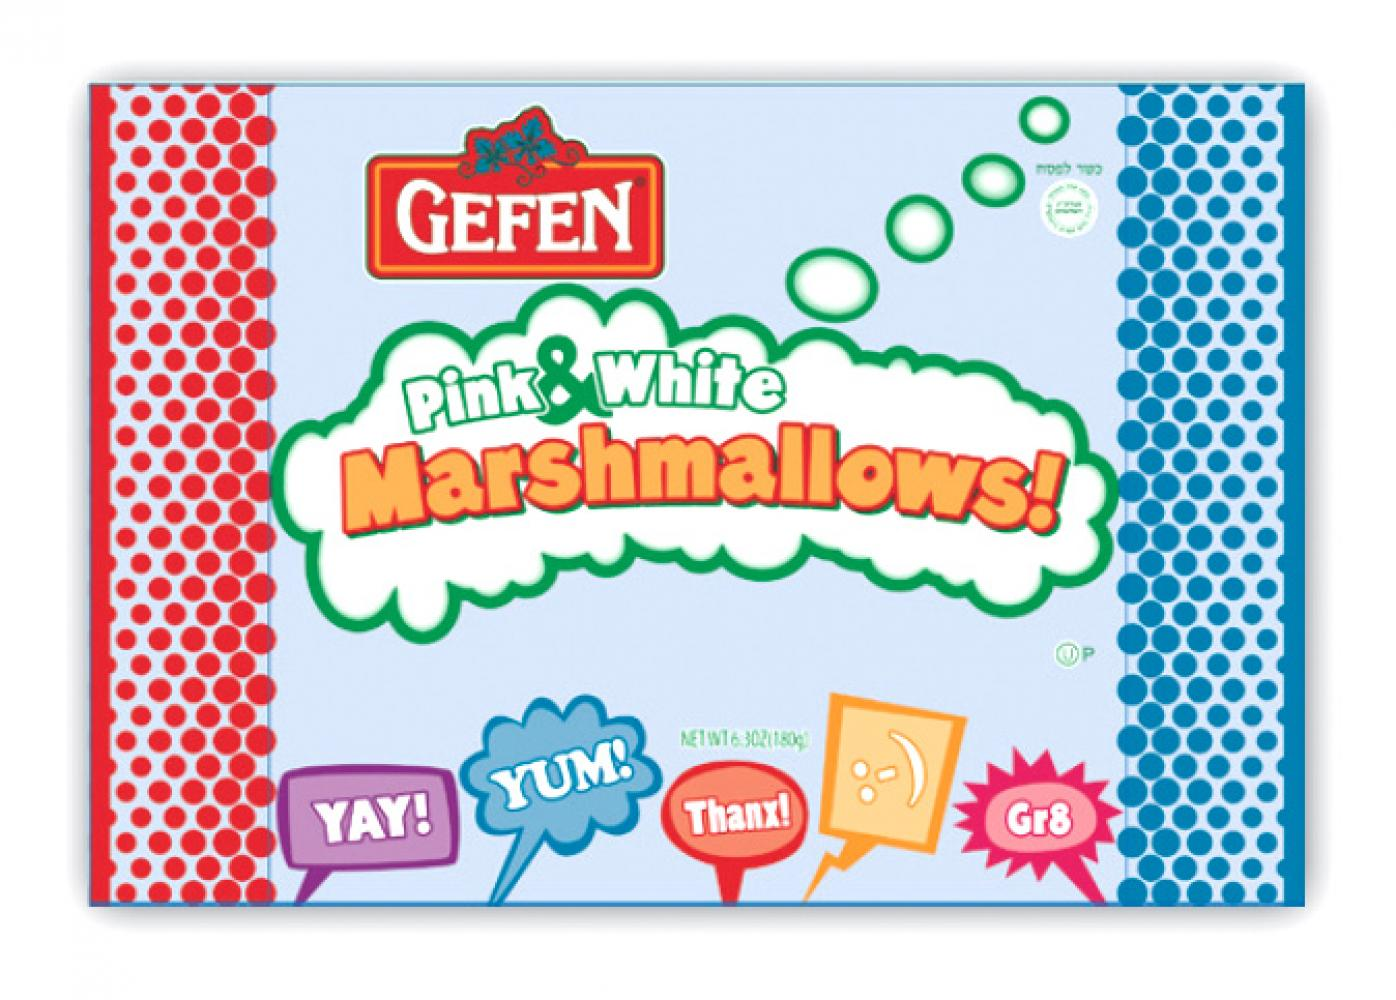 Gefen Pink & White Marshmallows 6.3 oz.